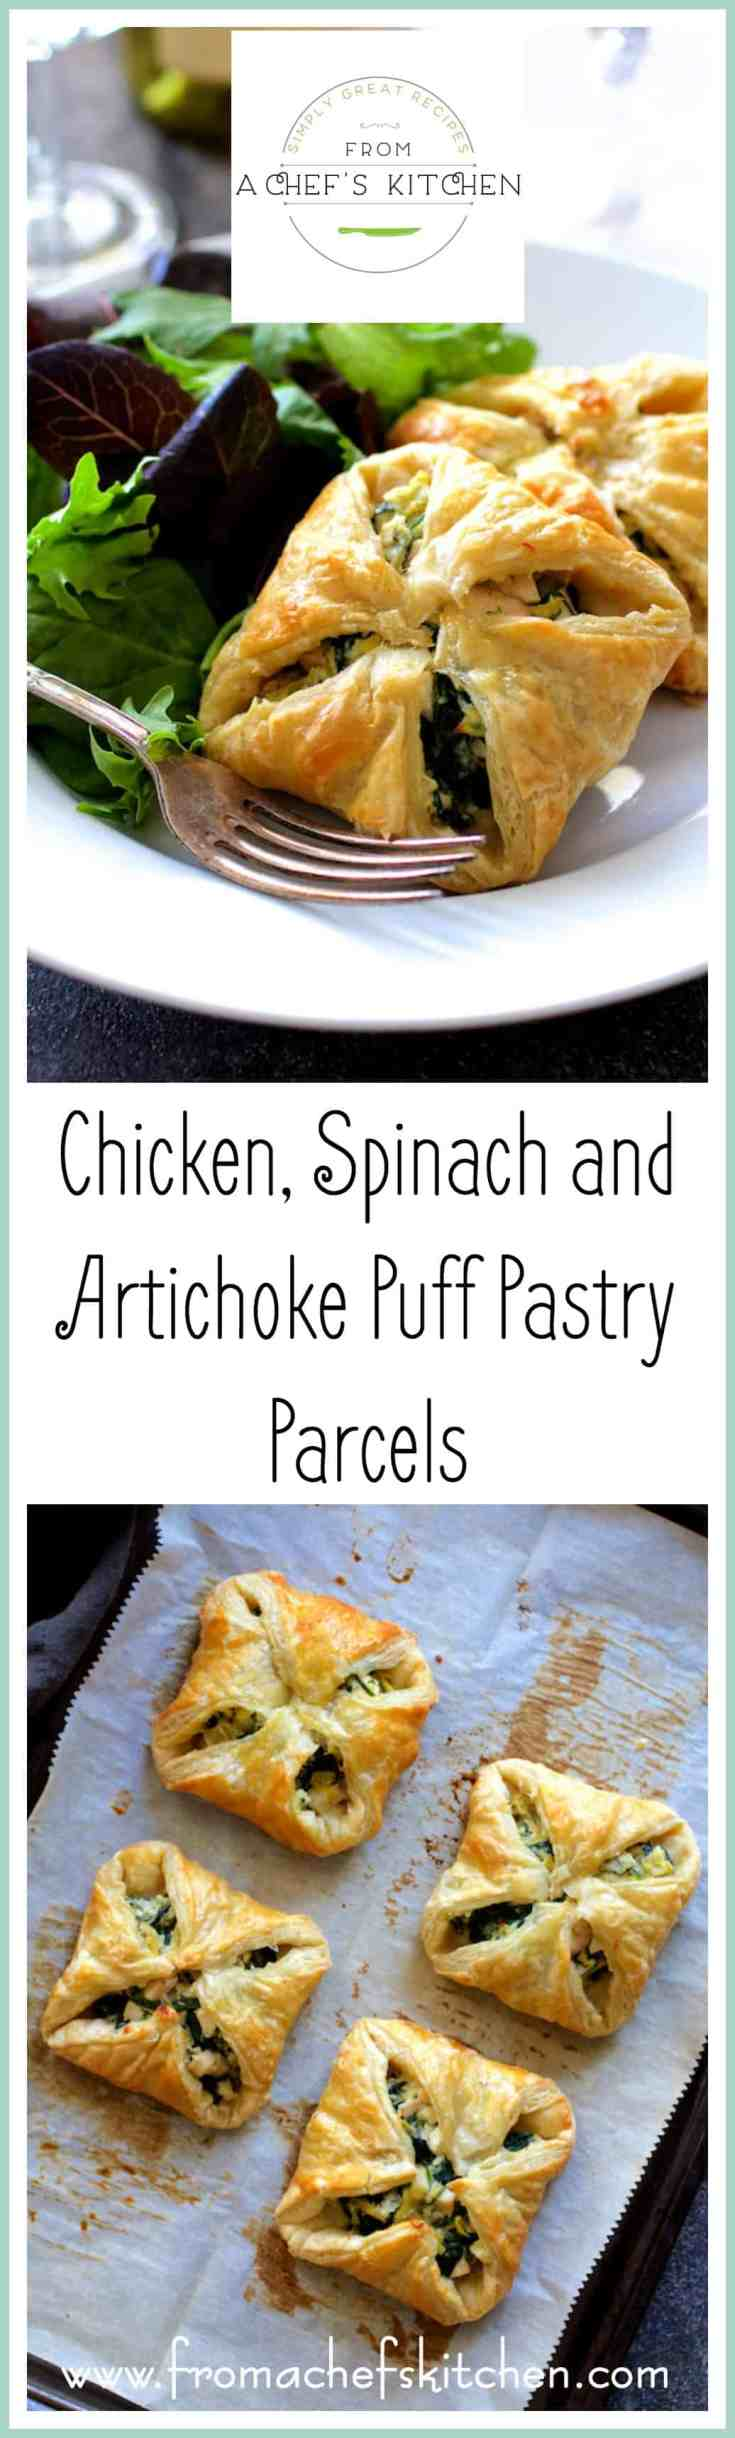 Chicken, Spinach and Artichoke Puff Pastry Parcels are super elegant and perfect for your spring special occasion! #puffpastry #appetizer #chicken #spinach #artichoke